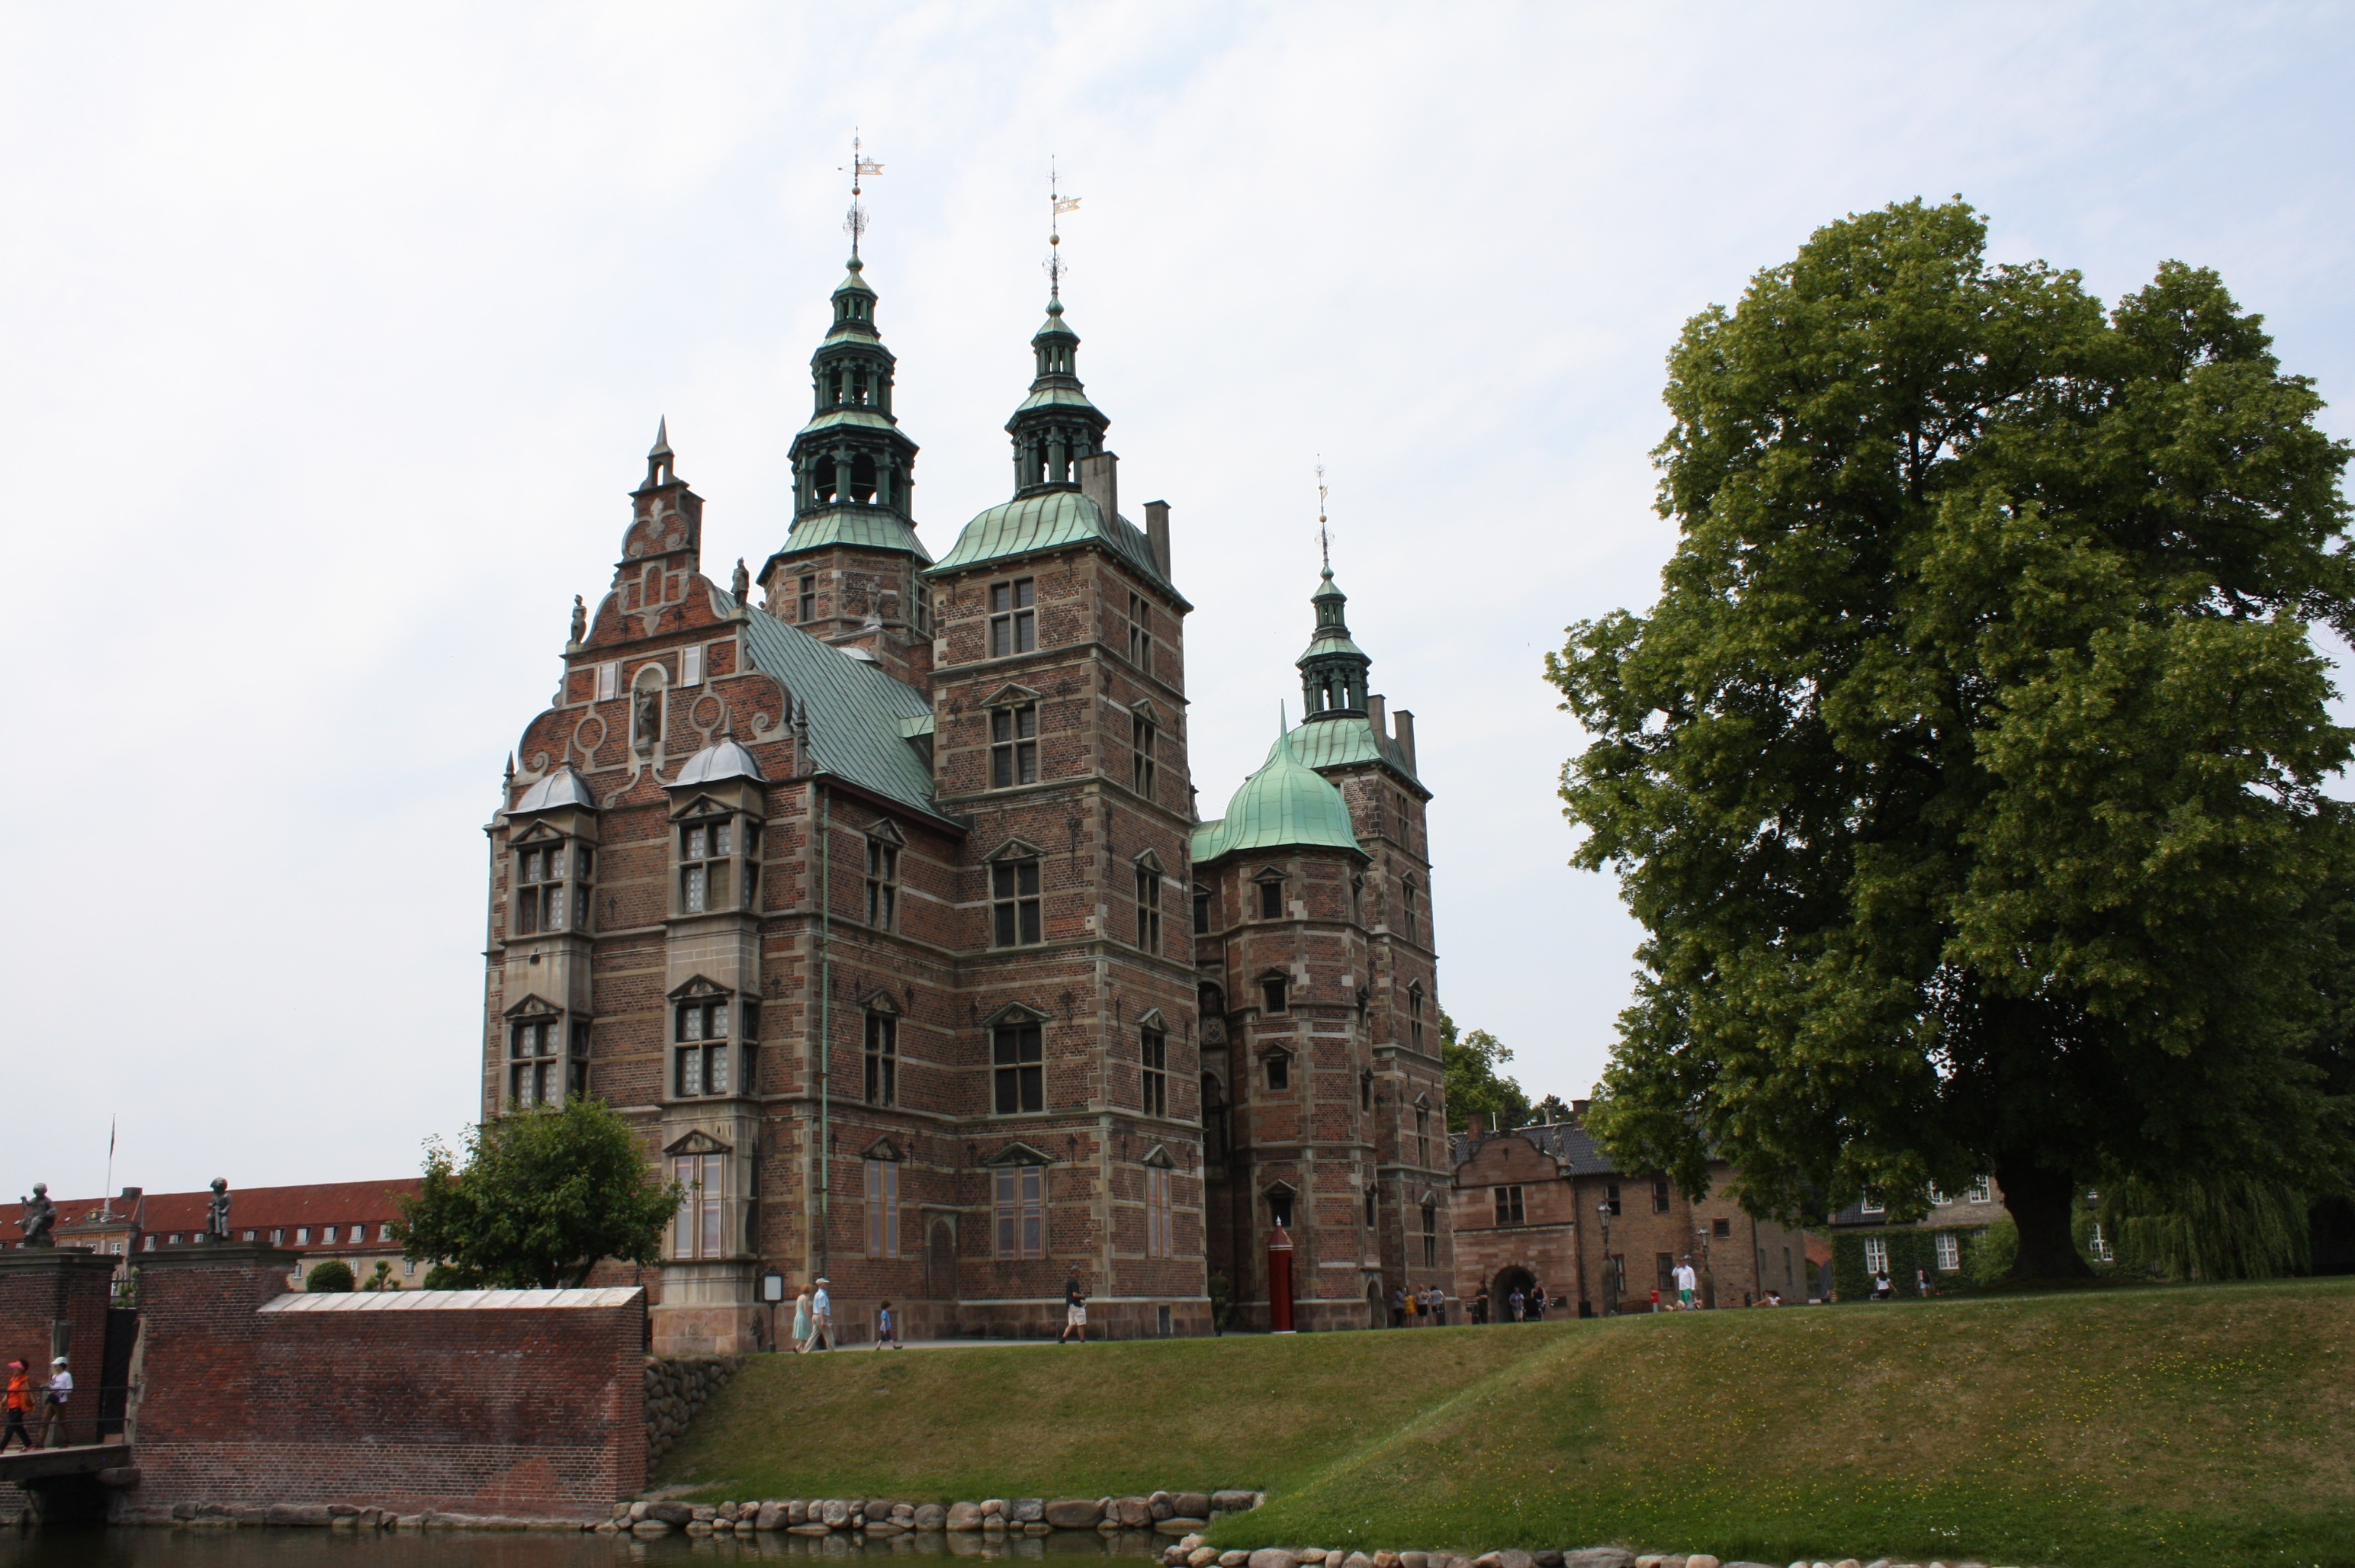 The Grand Scandinavian Circle Tour - Rosenborg Castle, Copenhagen, Denmark